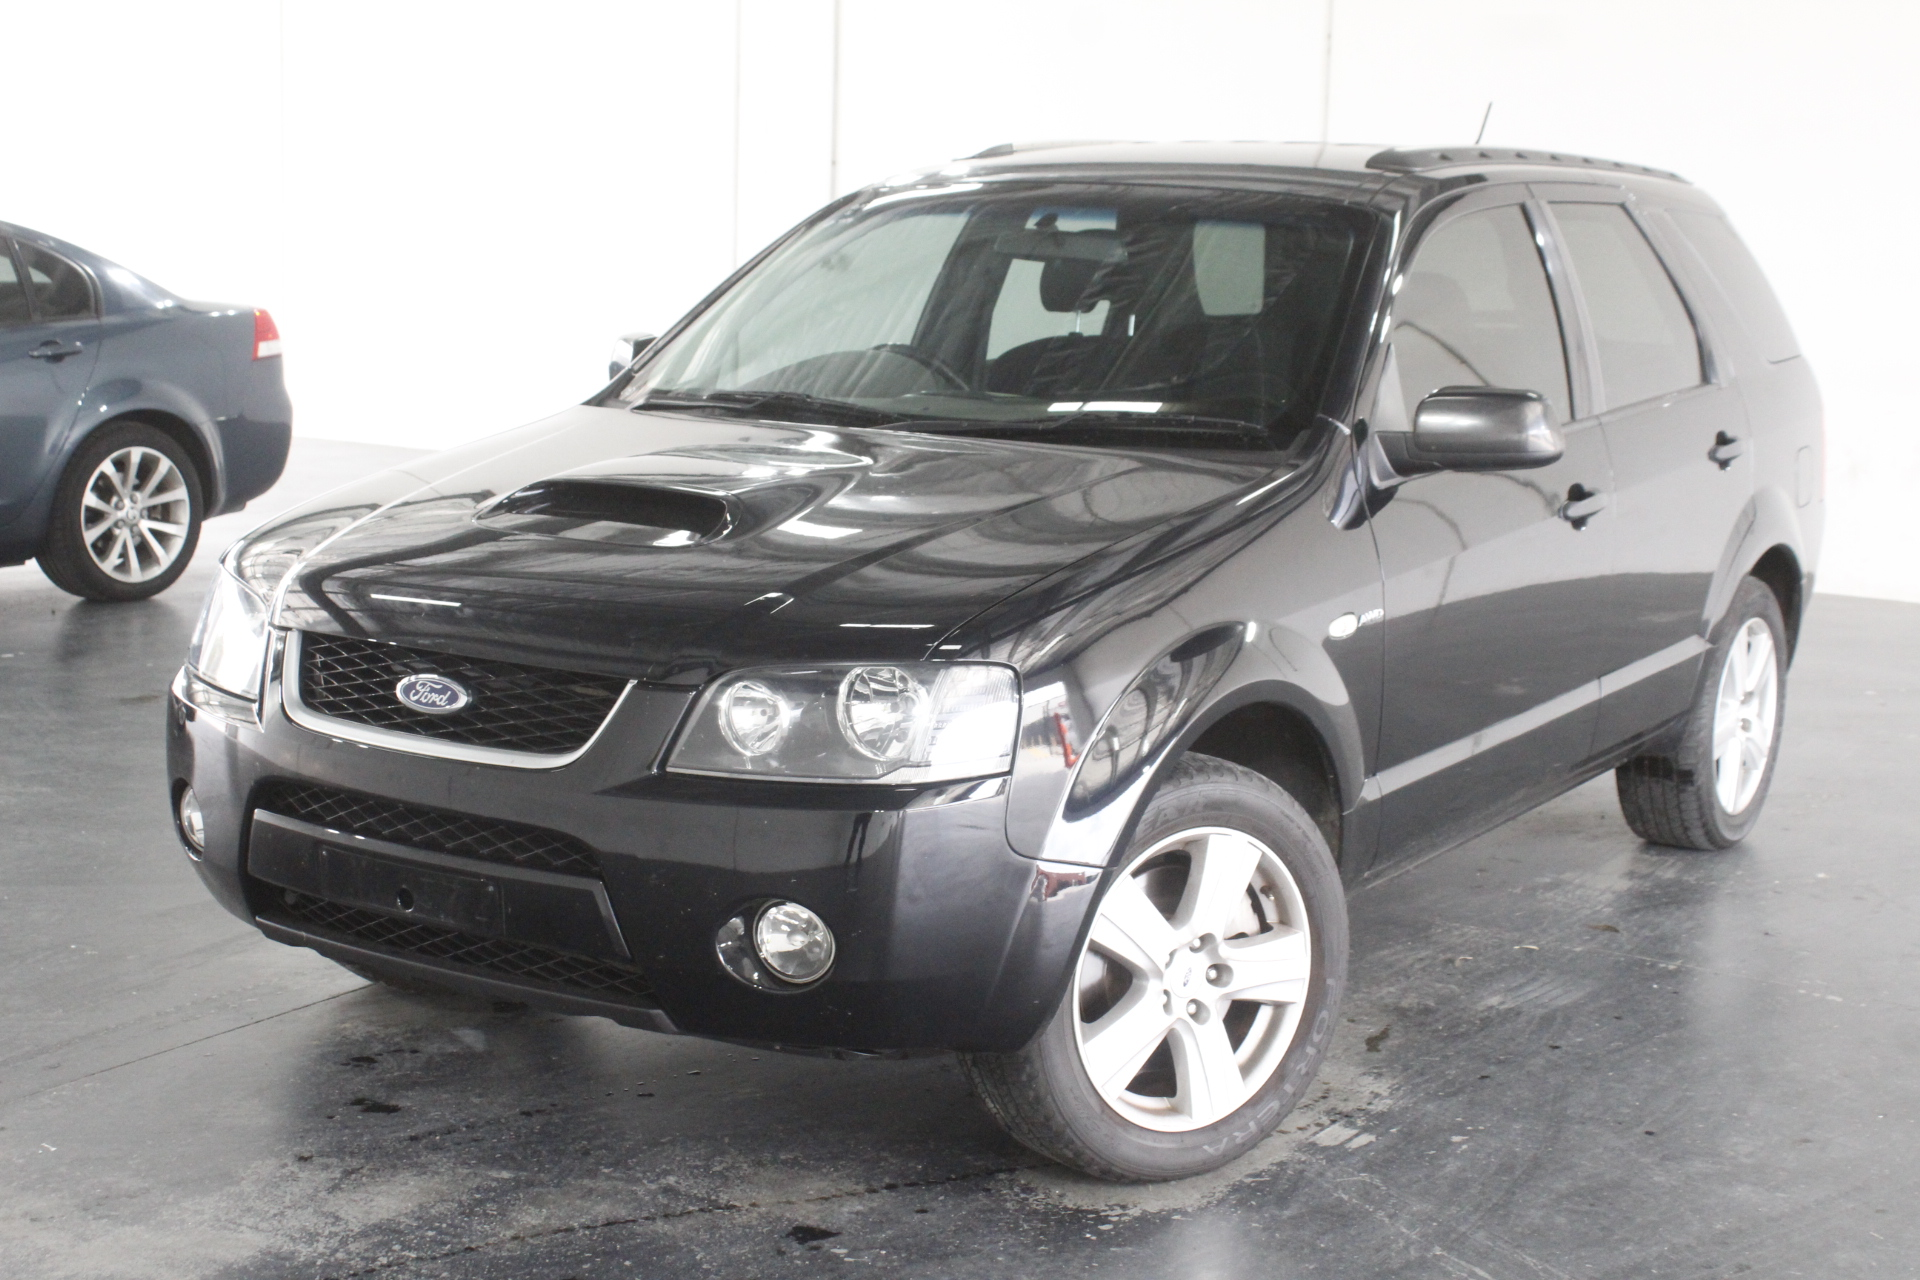 2008 Ford Territory Turbo (4x4) SY Automatic Wagon